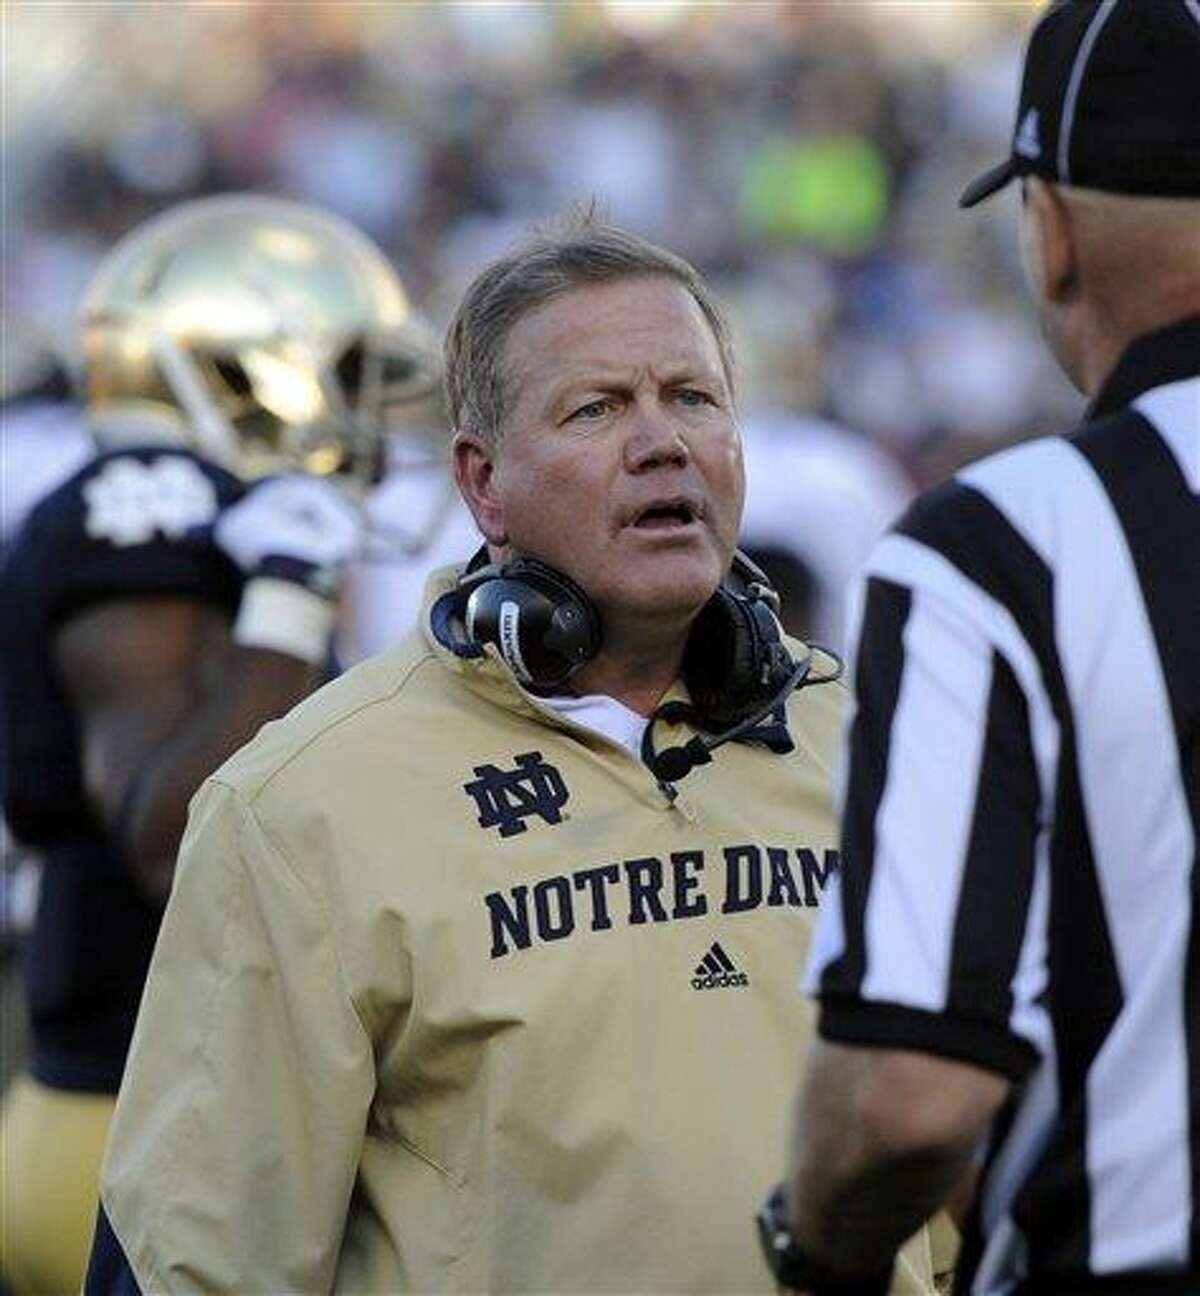 Notre Dame football coach Brian Kelly talks with a referee during the Purdue game Sept. 8, 2012 in South Bend, Ind. (AP Photo/Joe Raymond)